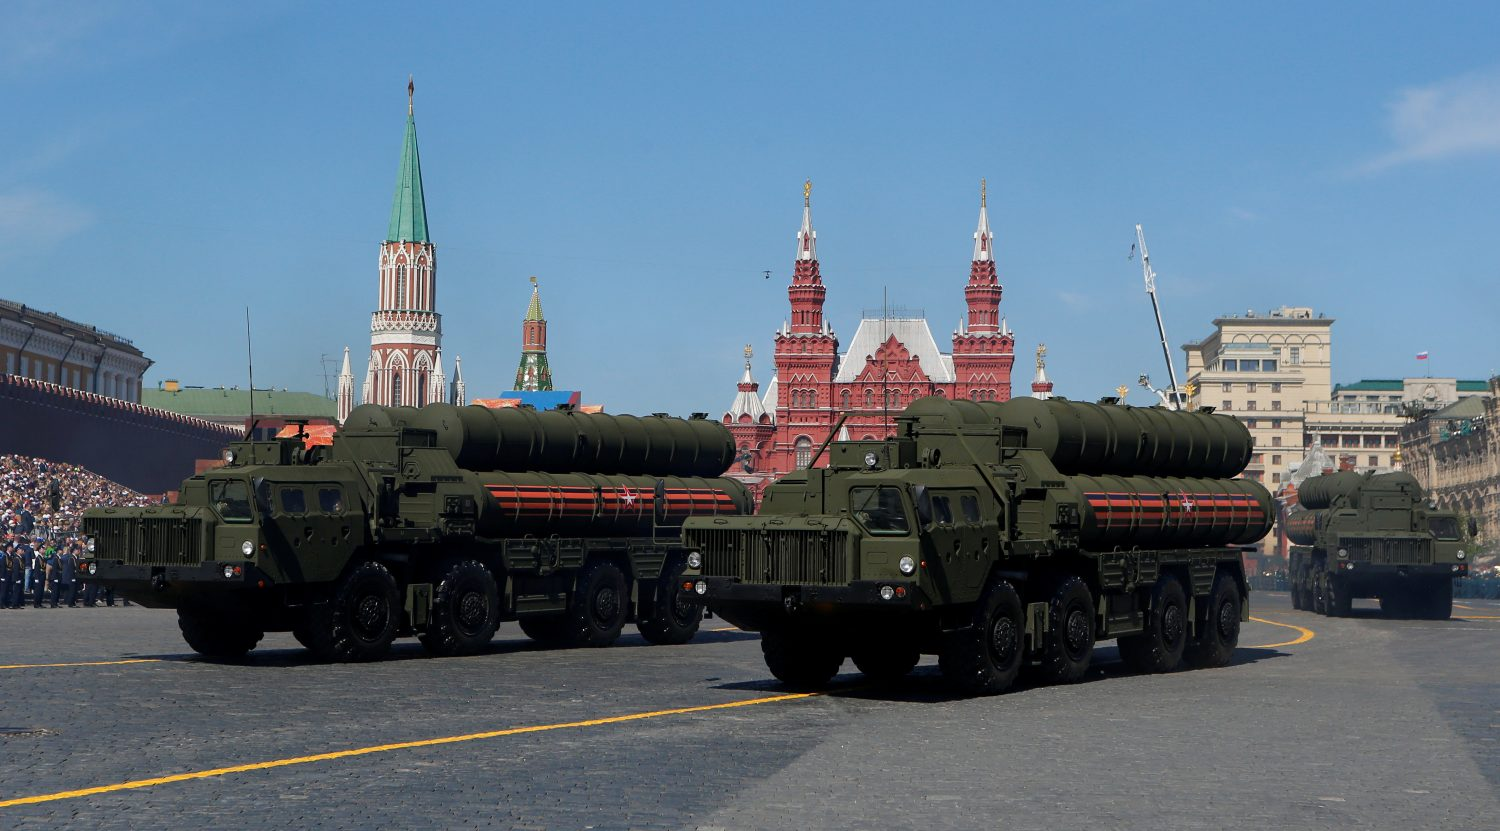 FILE PHOTO: Russian servicemen drive S-400 missile air defence systems during the Victory Day parade, marking the 73rd anniversary of the victory over Nazi Germany in World War Two, at Red Square in Moscow, Russia May 9, 2018. REUTERS/Sergei Karpukhin -/File Photo